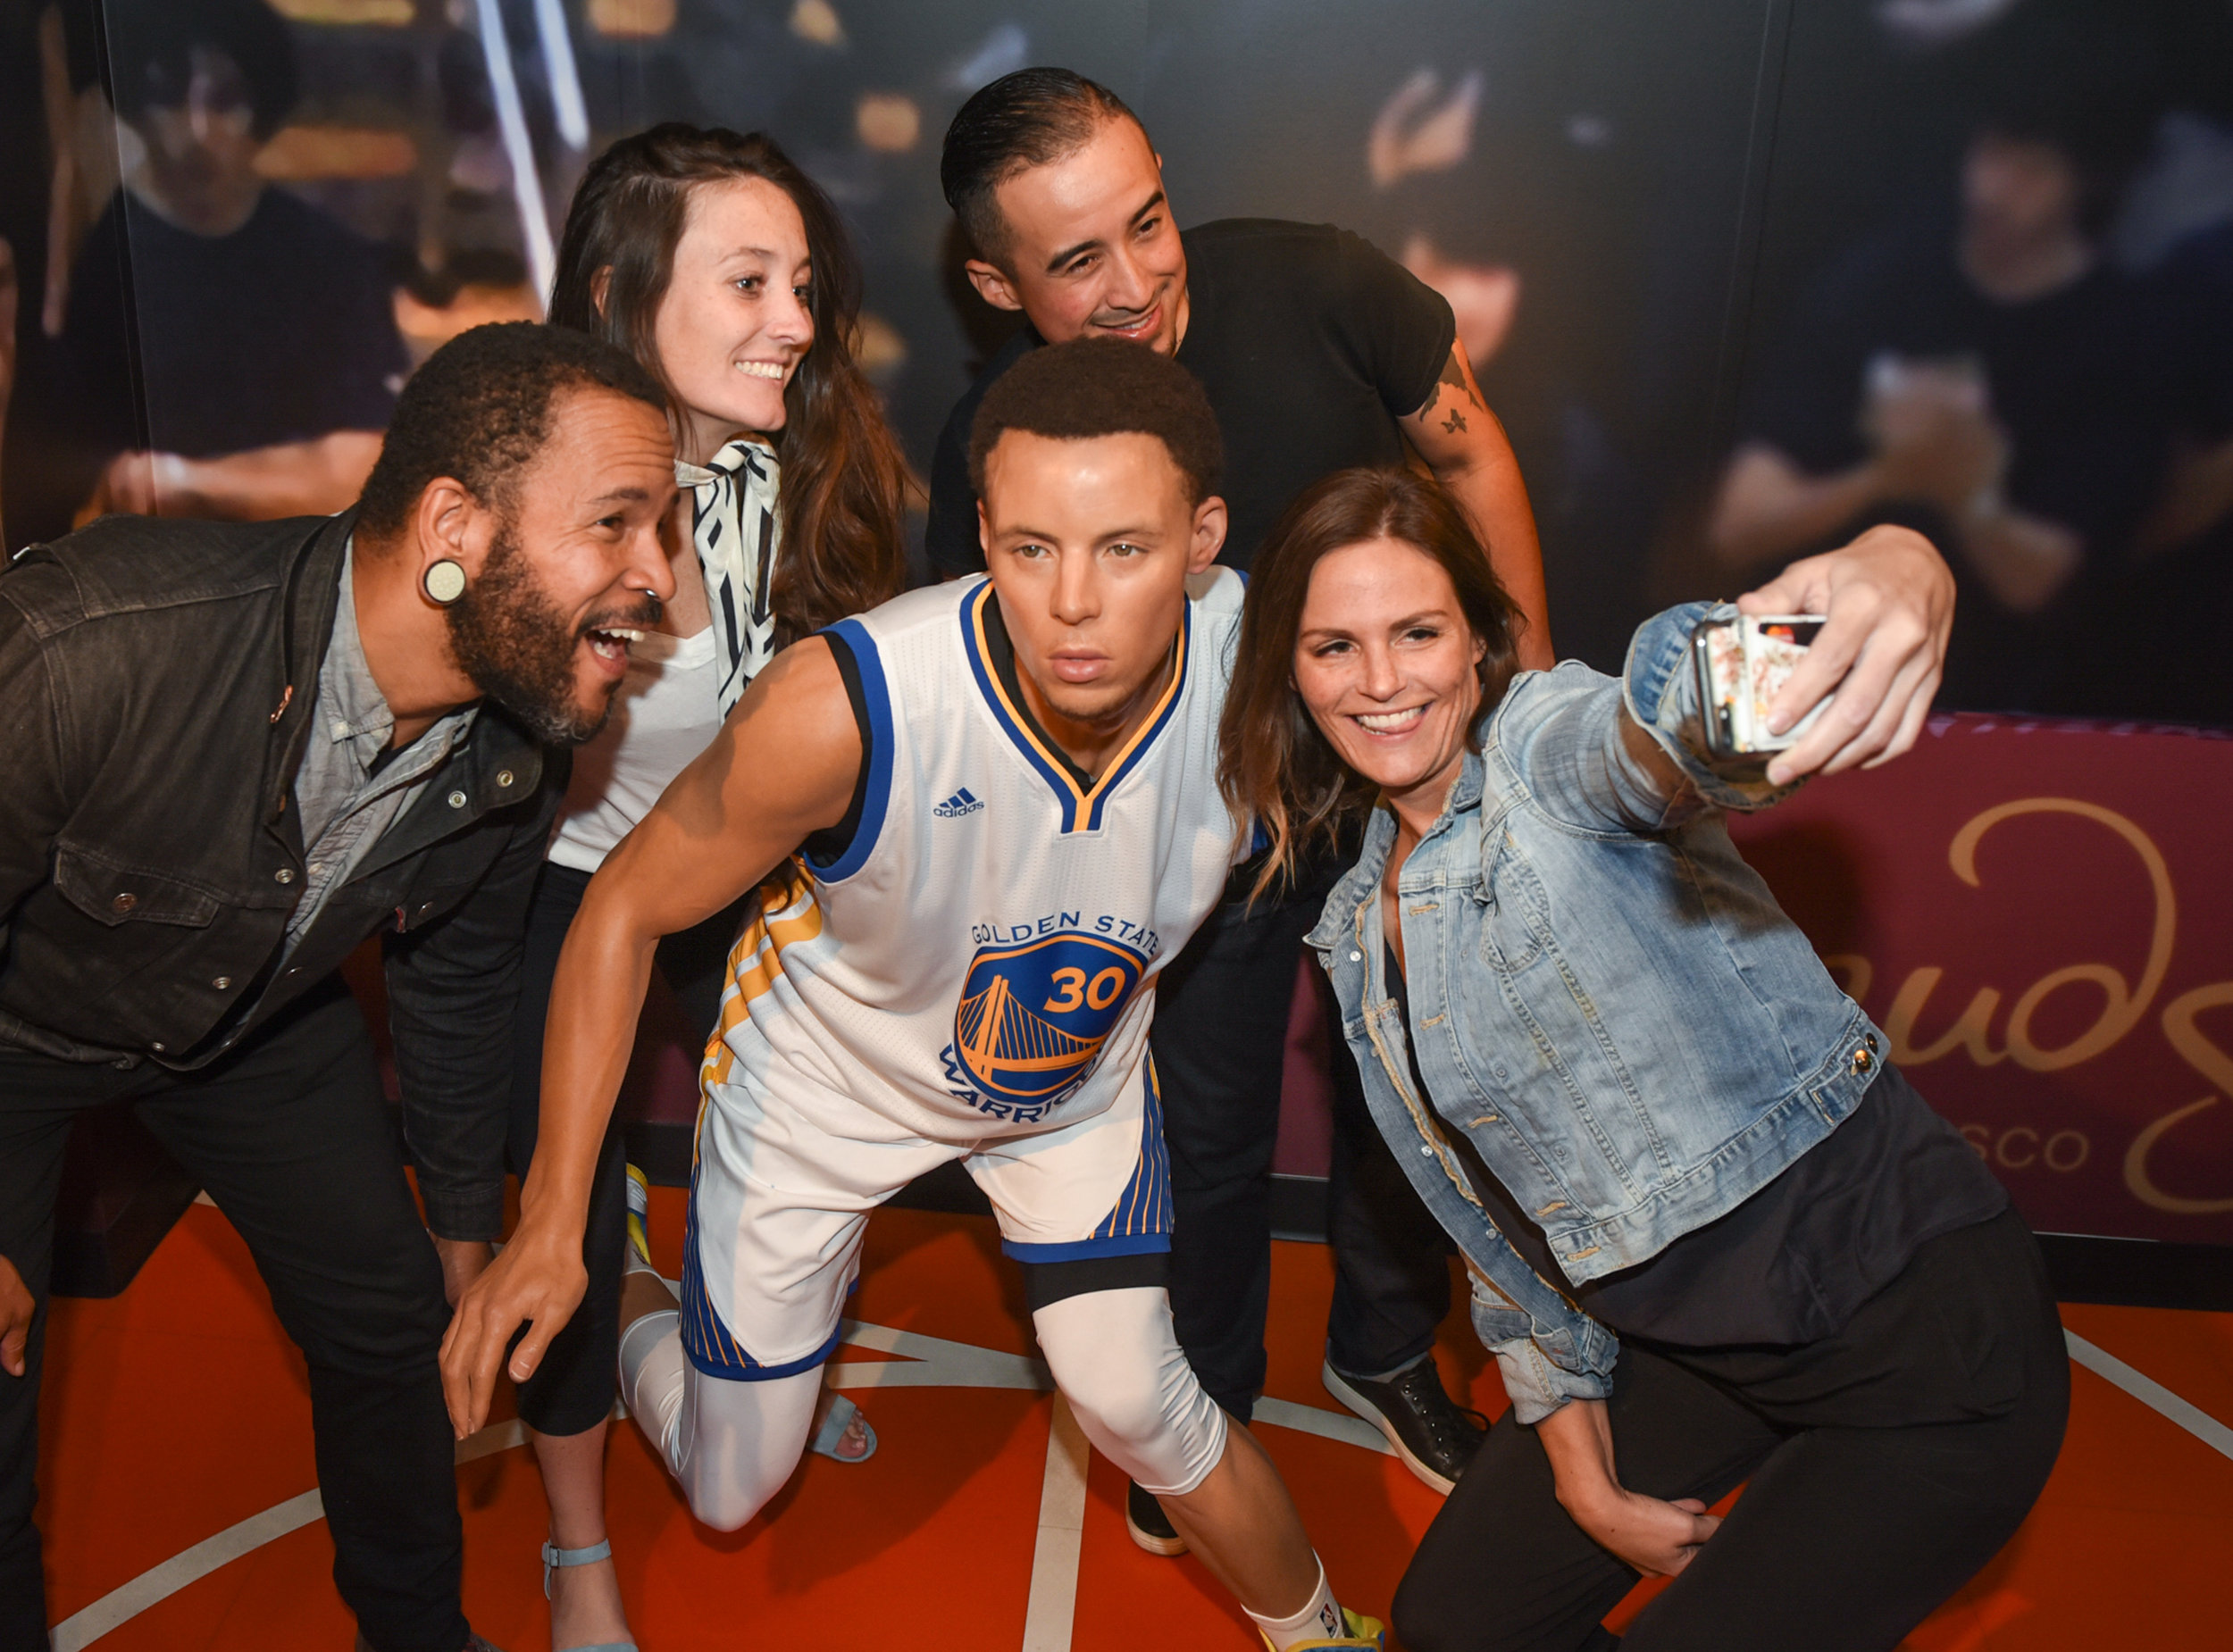 Fisherman's Wharf - Young Friend Group Taking Selfie with Stephen Curry at Madame Tussauds.jpg